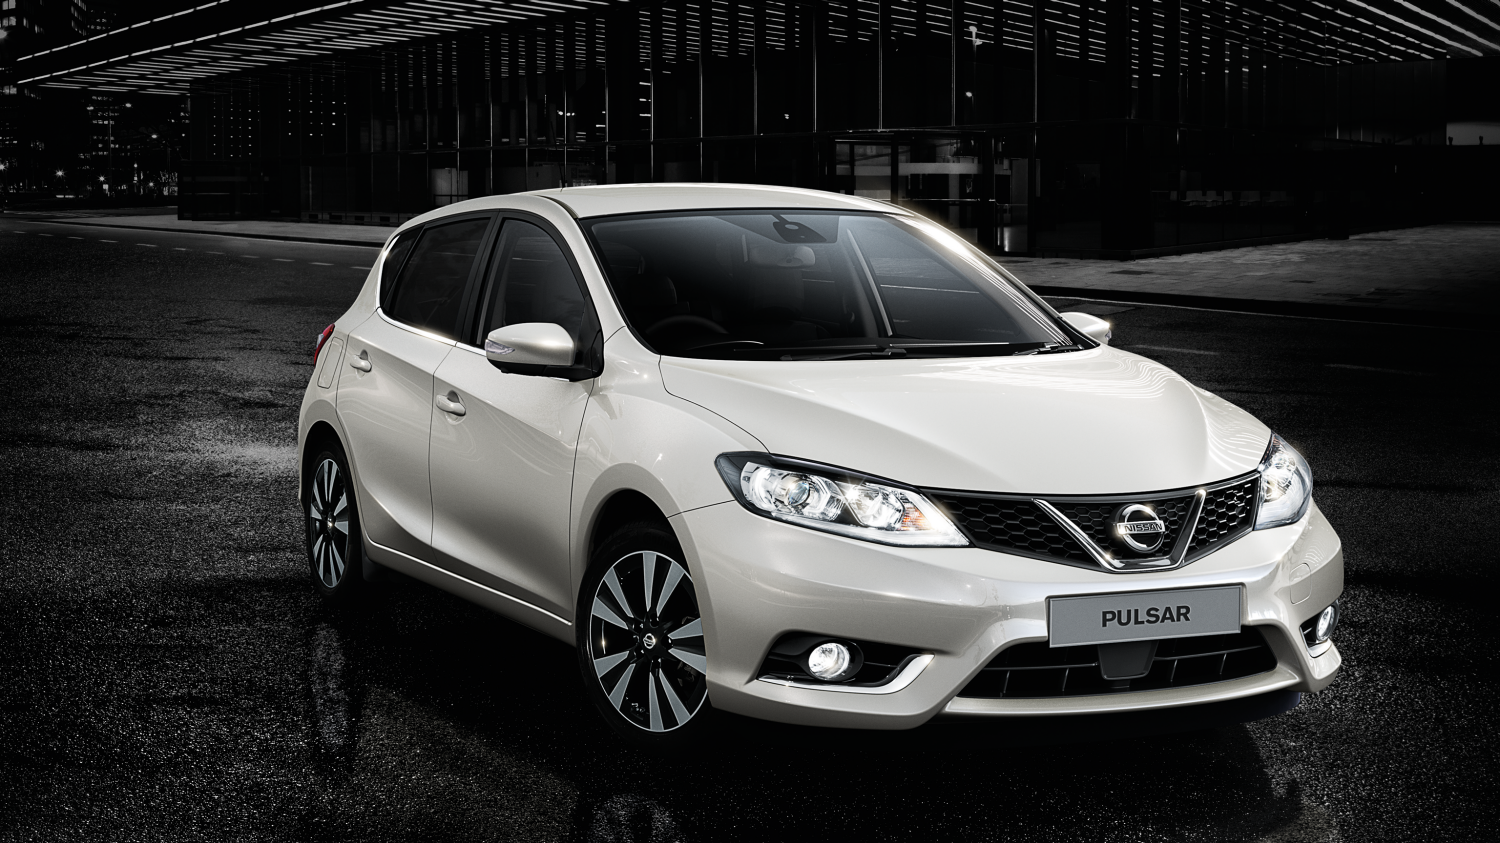 Nissan Pulsar – Hatchback | 3/4 front view with nighttime background